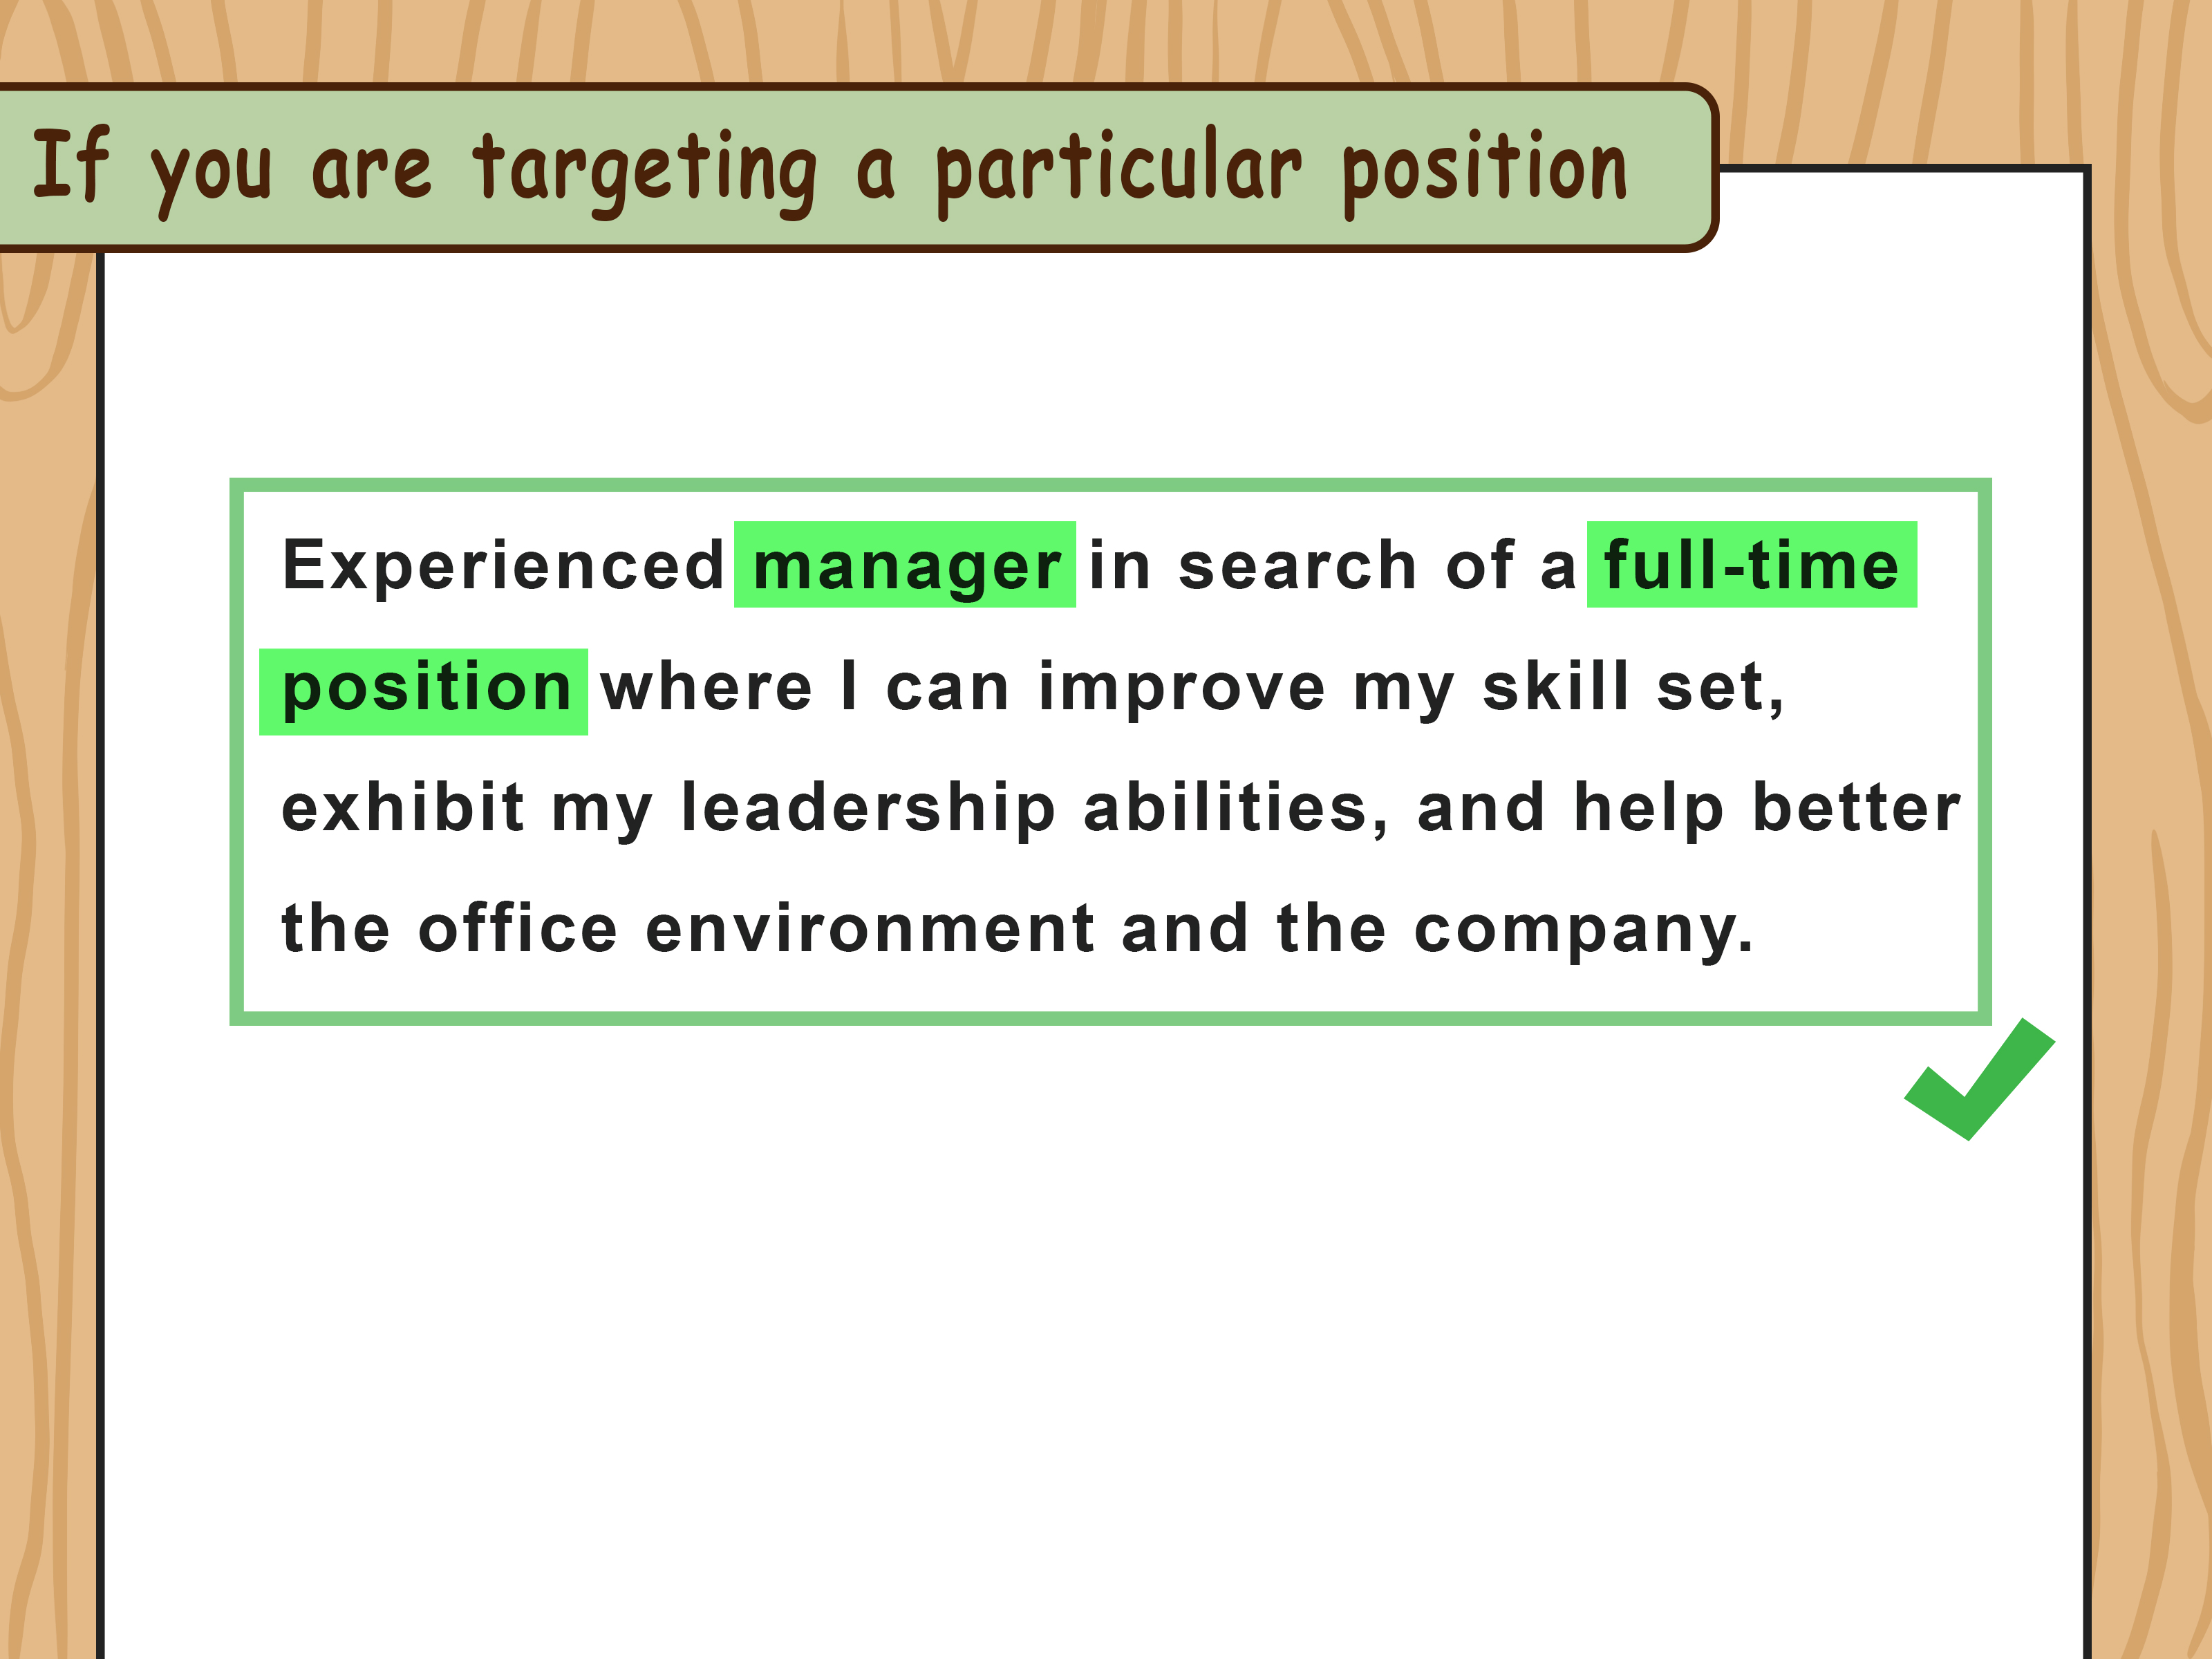 Best Way To Write An Objective For A Resume How To Write Resume Objectives With Examples Wikihow